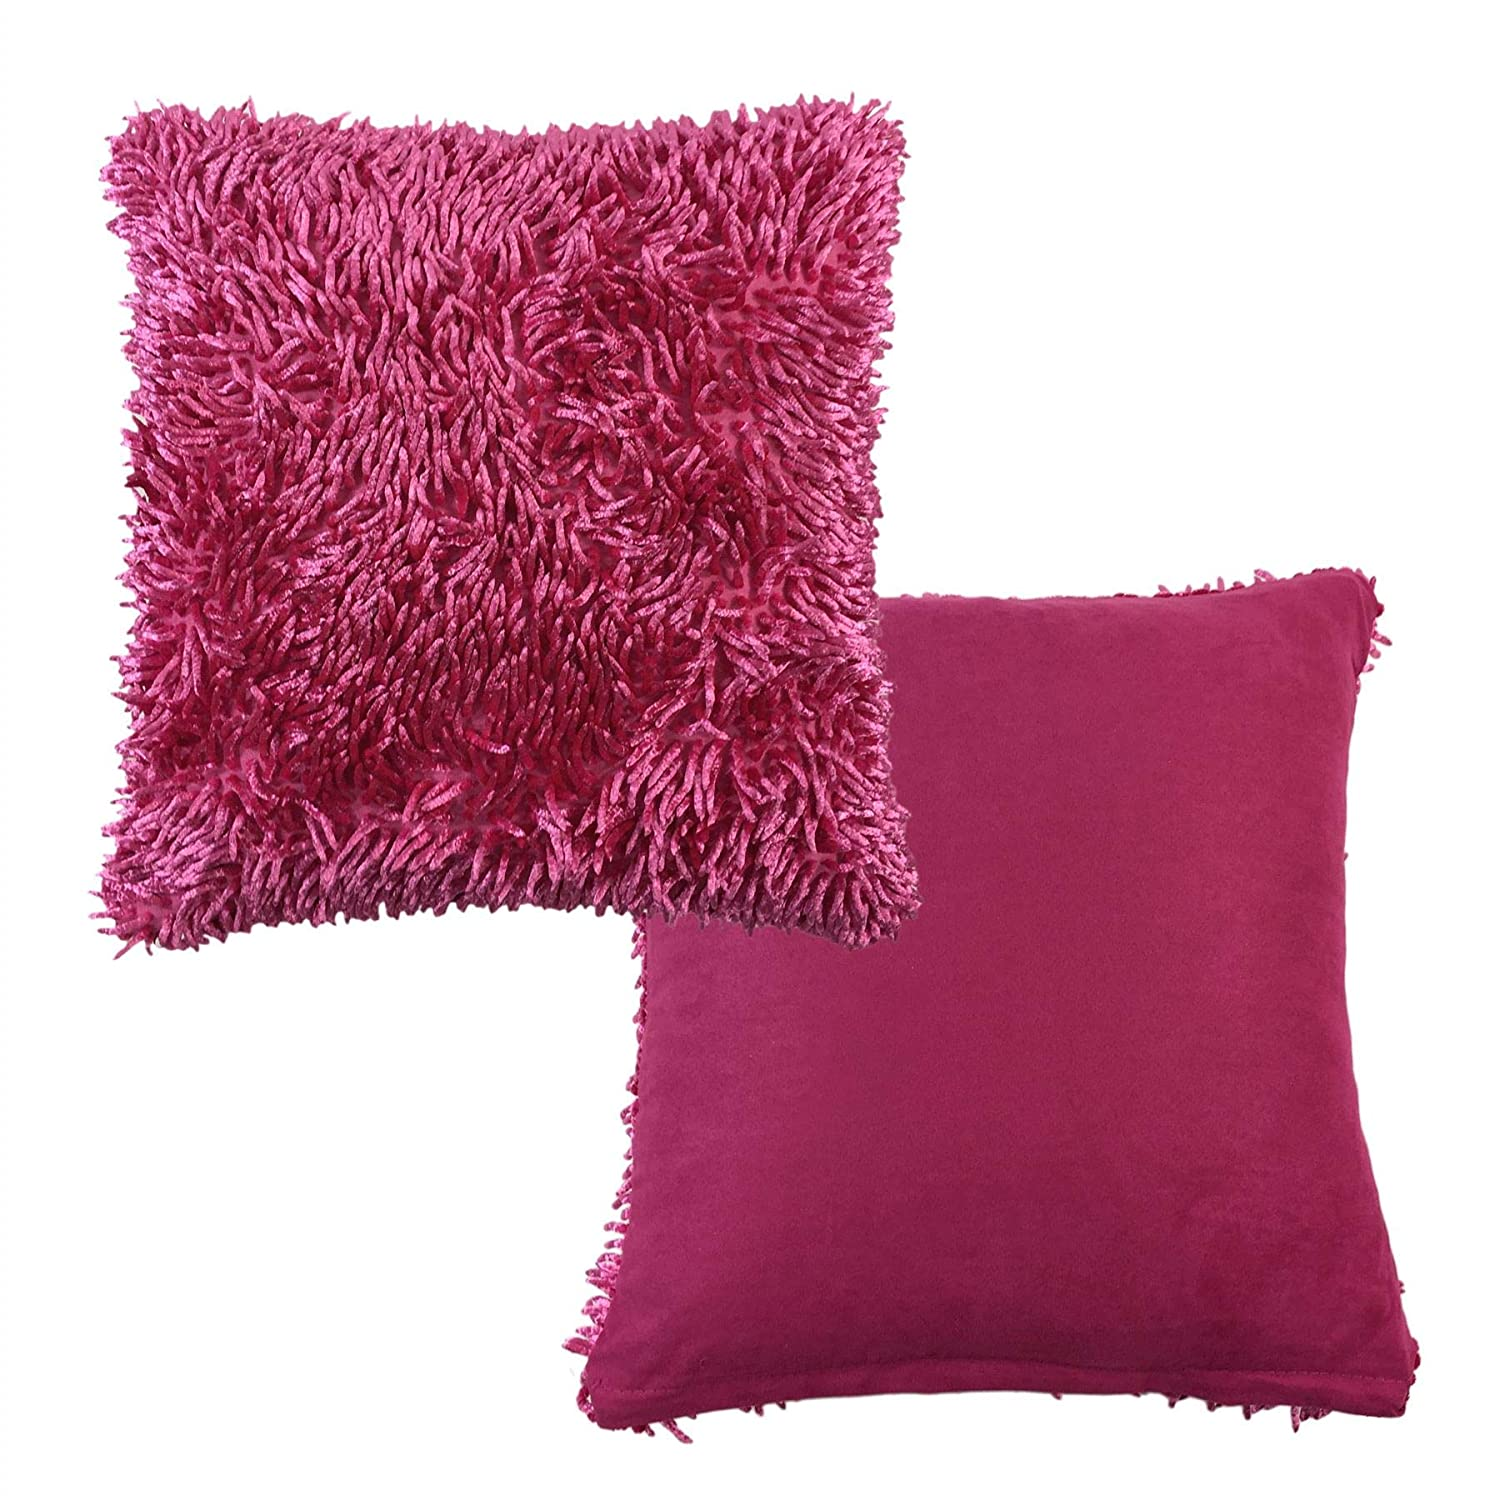 2 X Filled Luxurious Fuschia Pink Shaggy Chenille Twist Thick Supersoft 17-43cm Cushions Pillow Case Shams